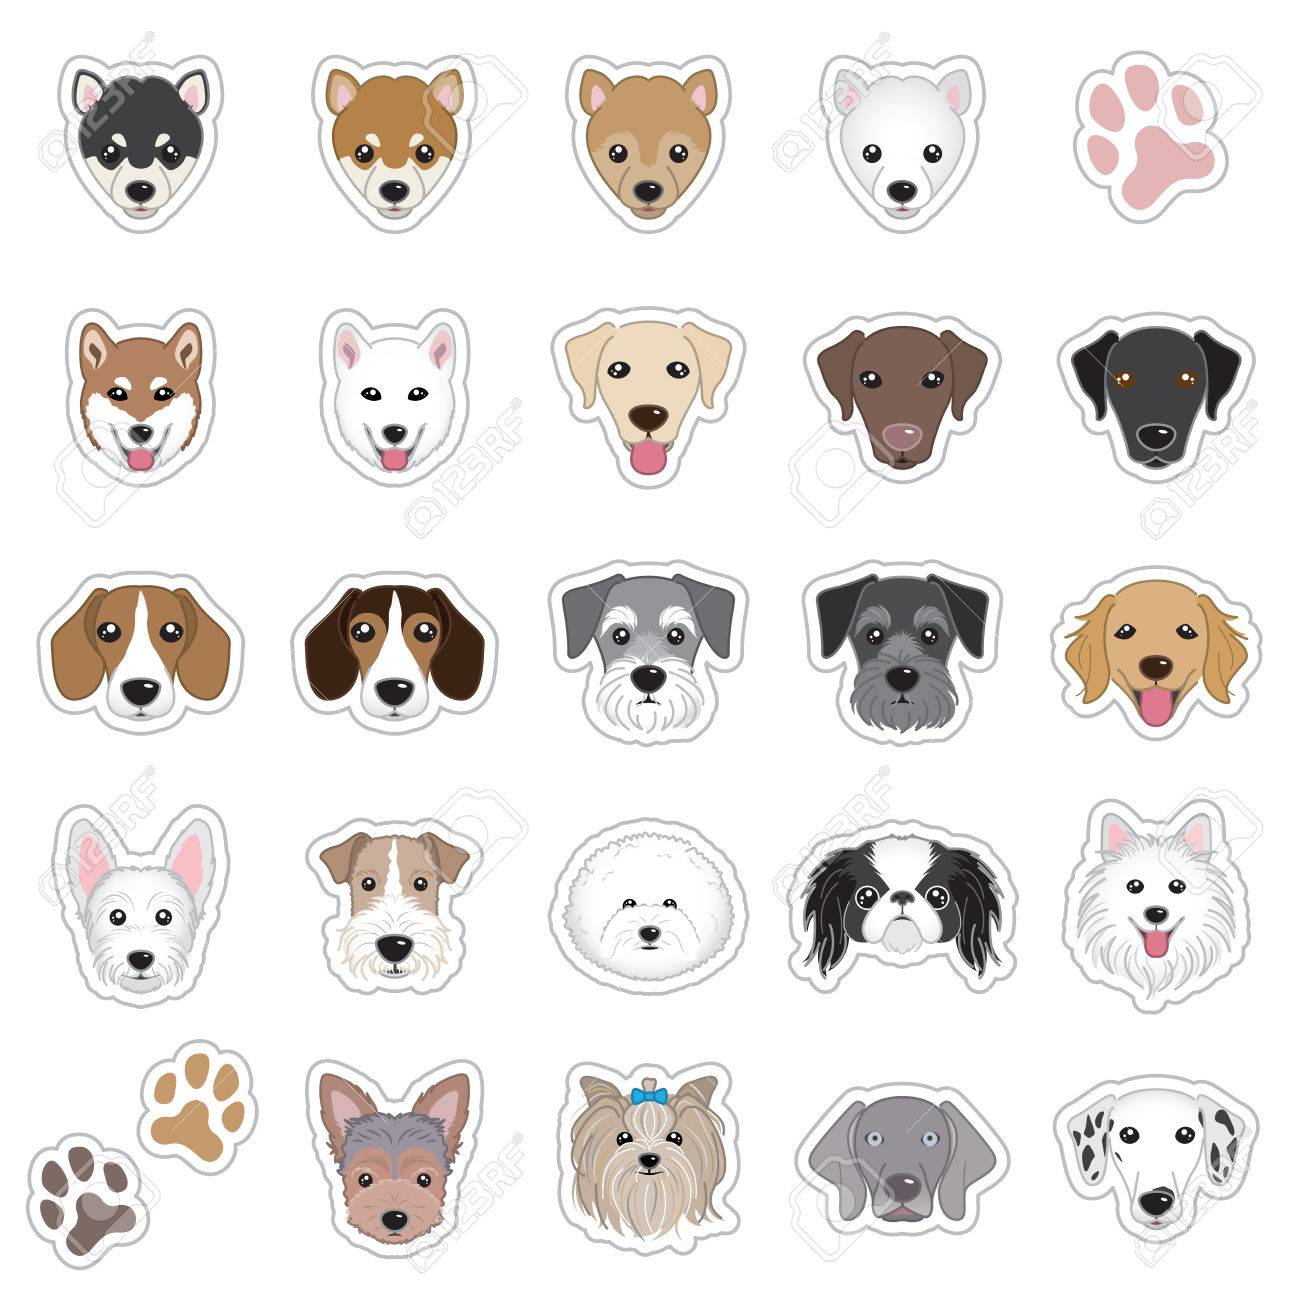 Illustrations of dog face - 34037833